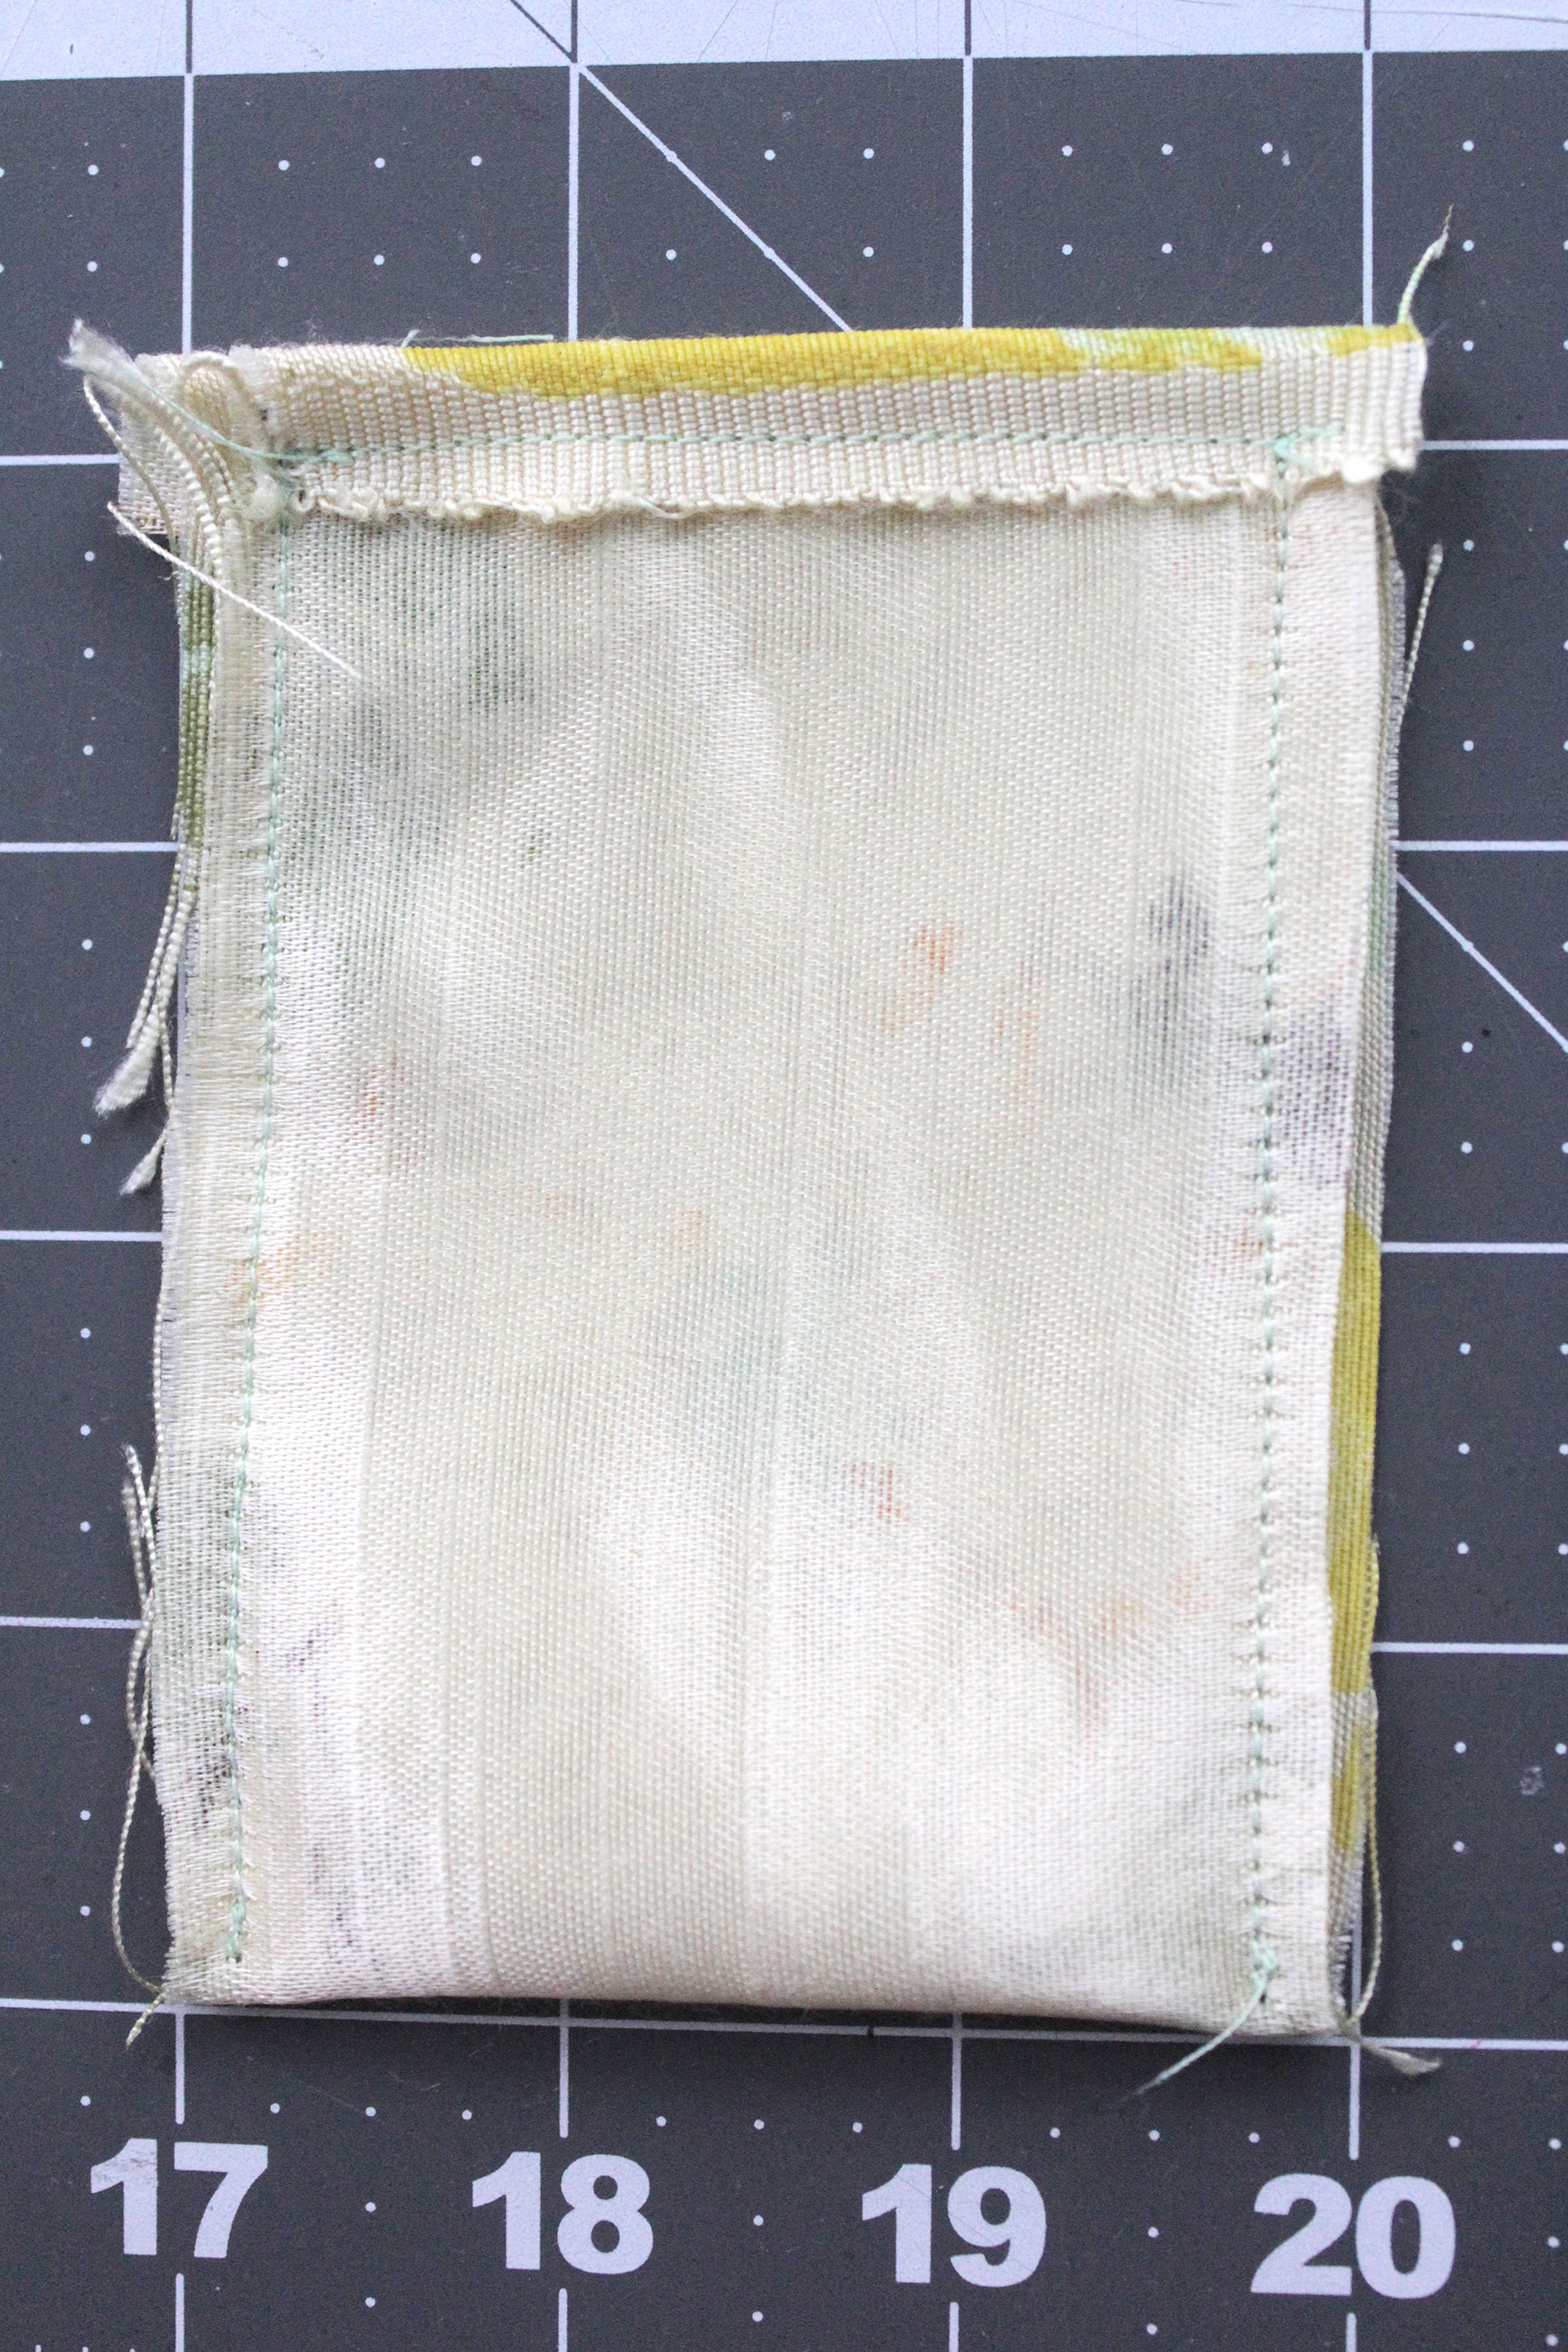 Step 8- fold the fabric in half and stitch sides